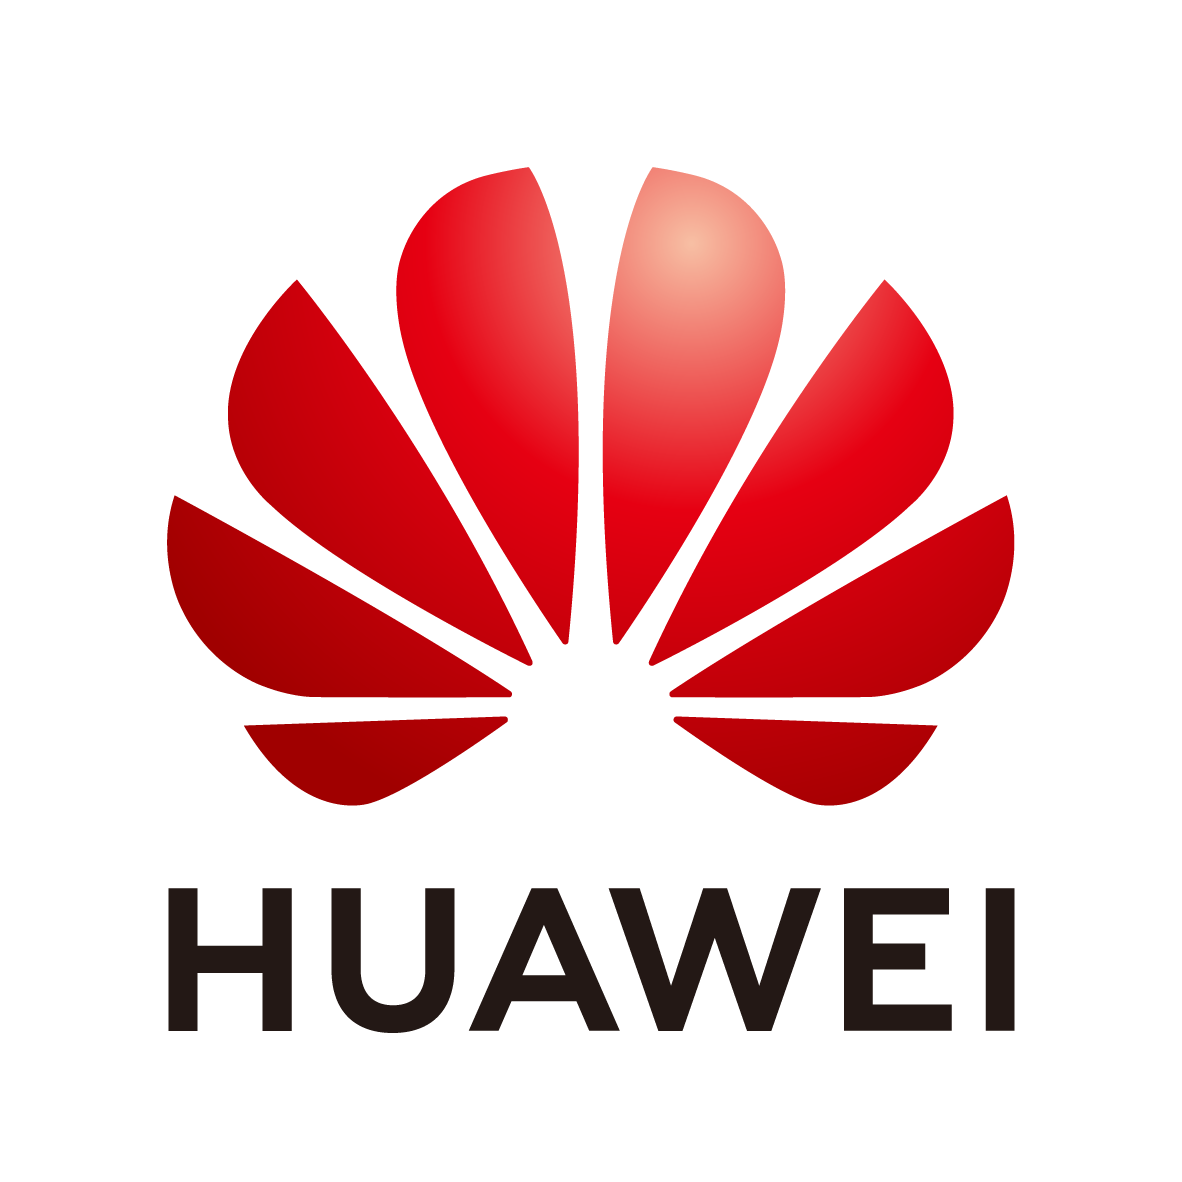 Huawei Device Co., Ltd.